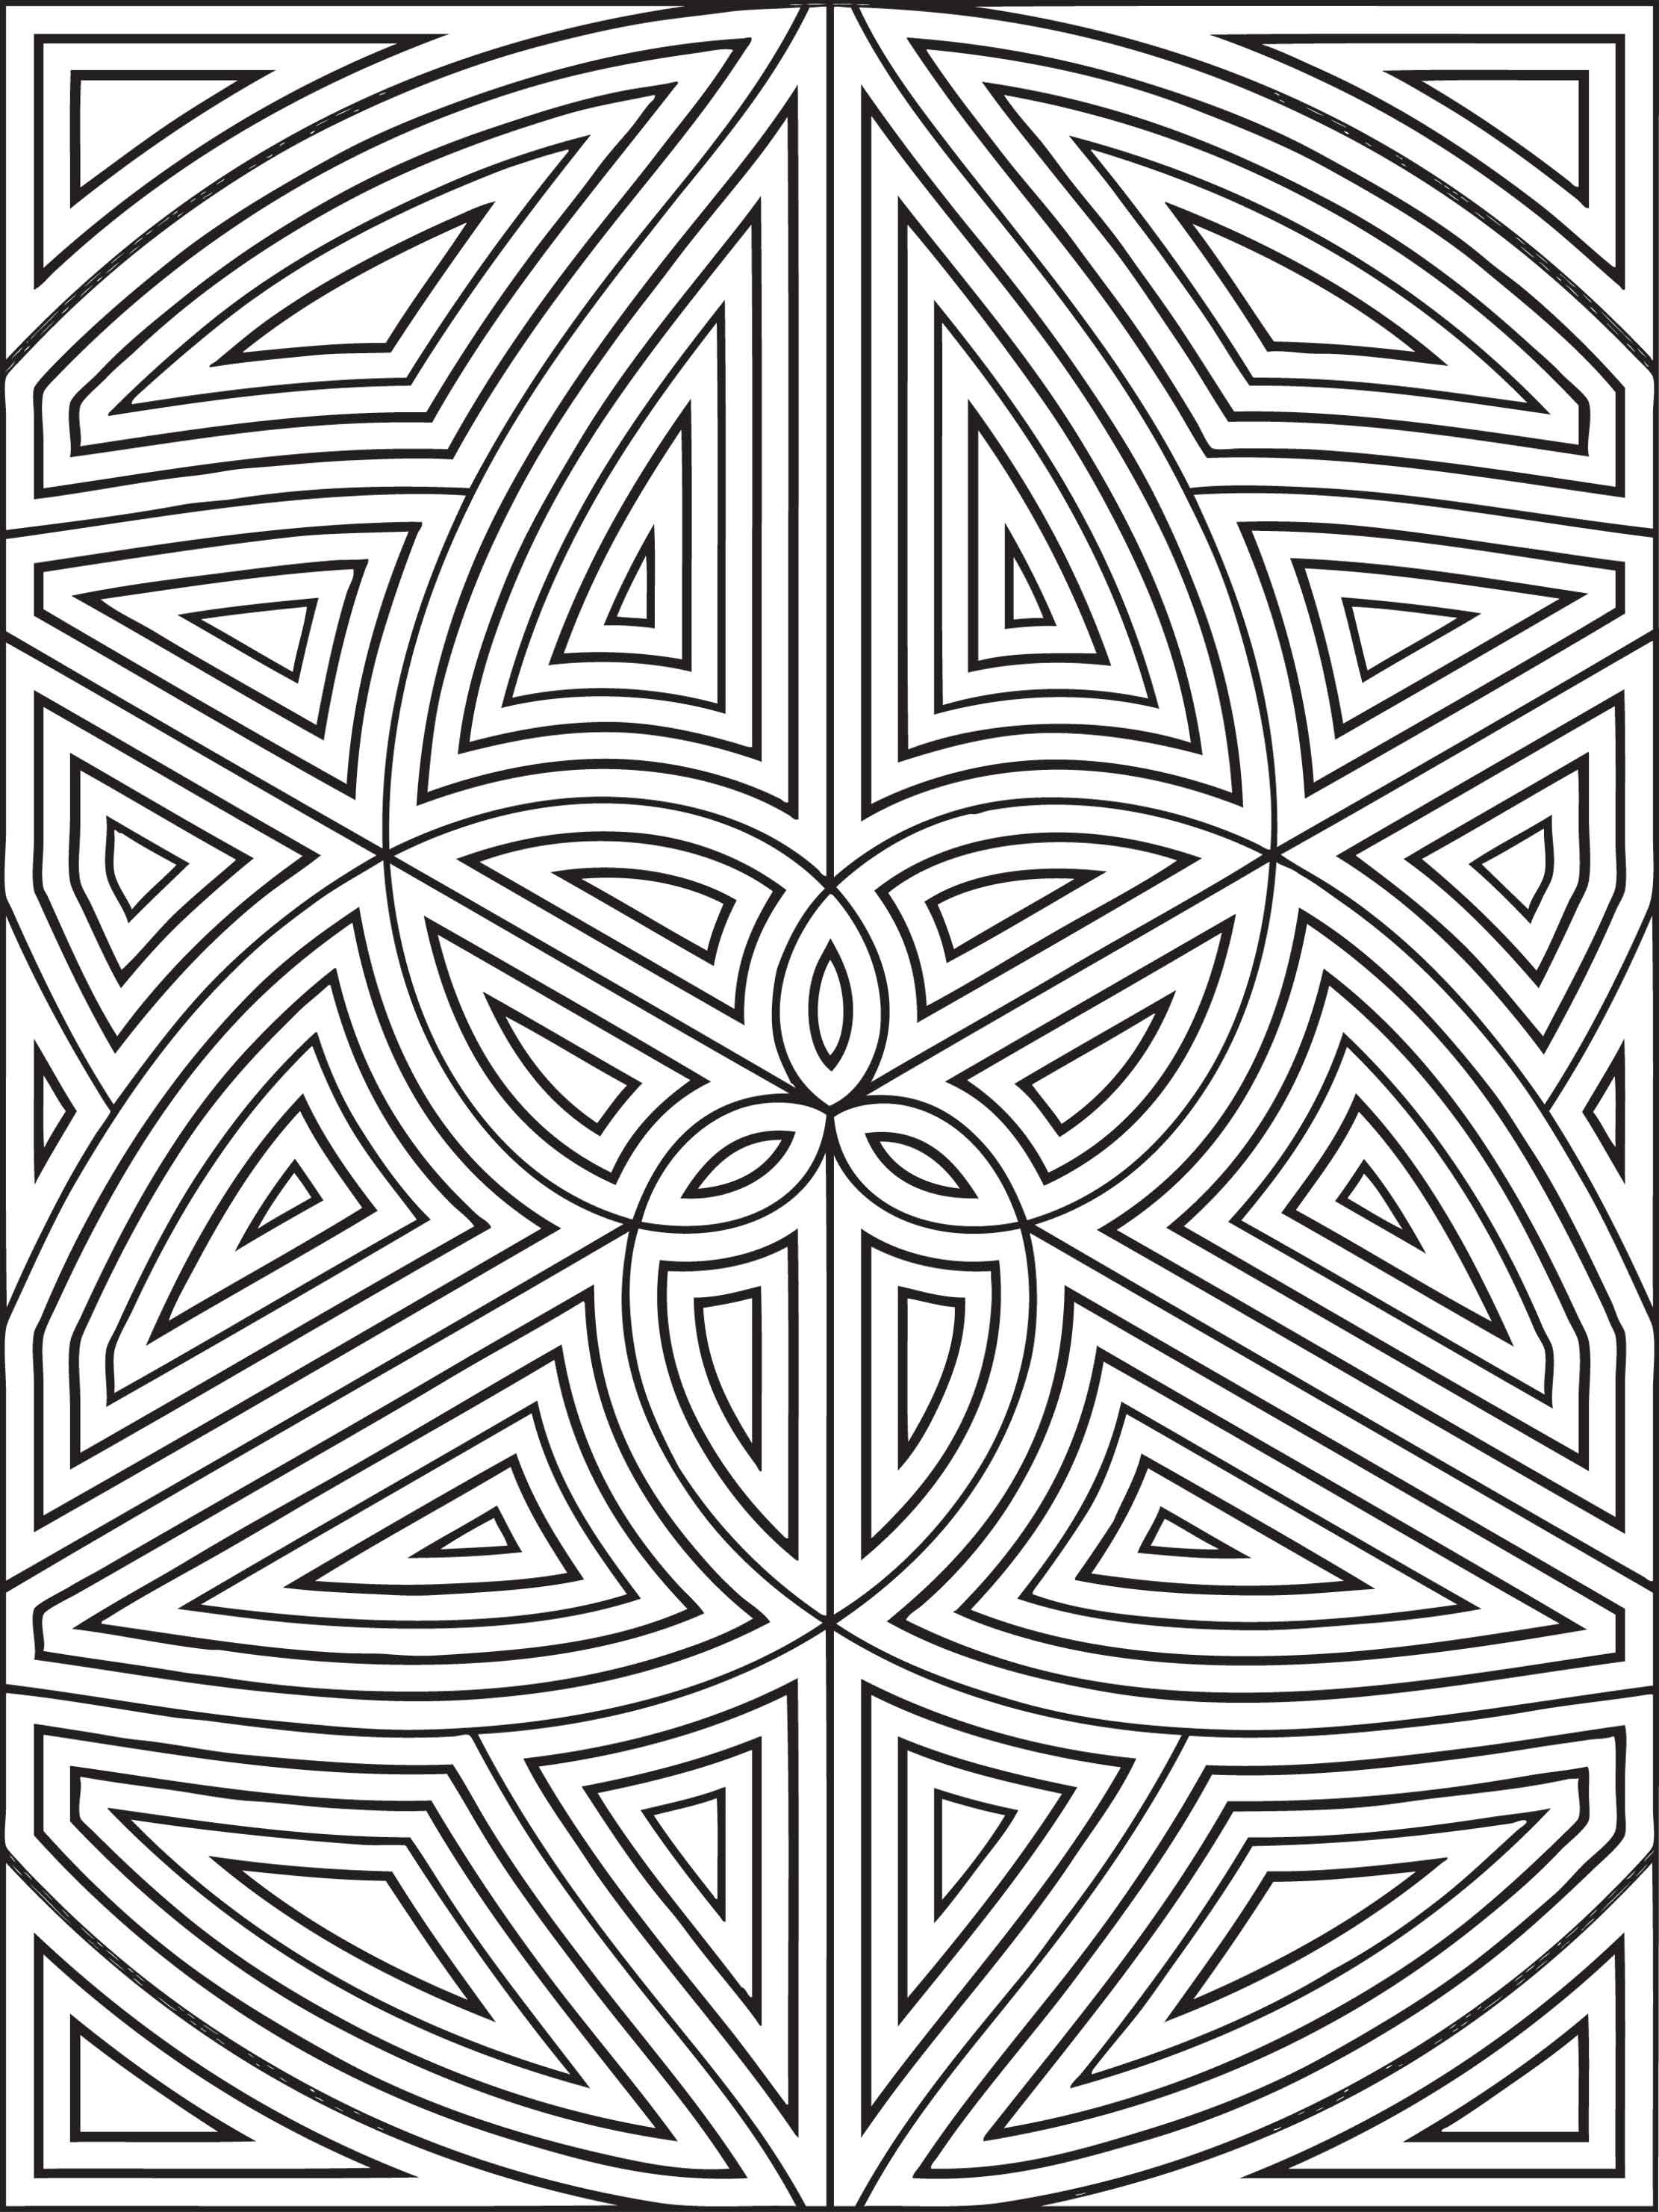 coloring pages geometric shapes - photo#7